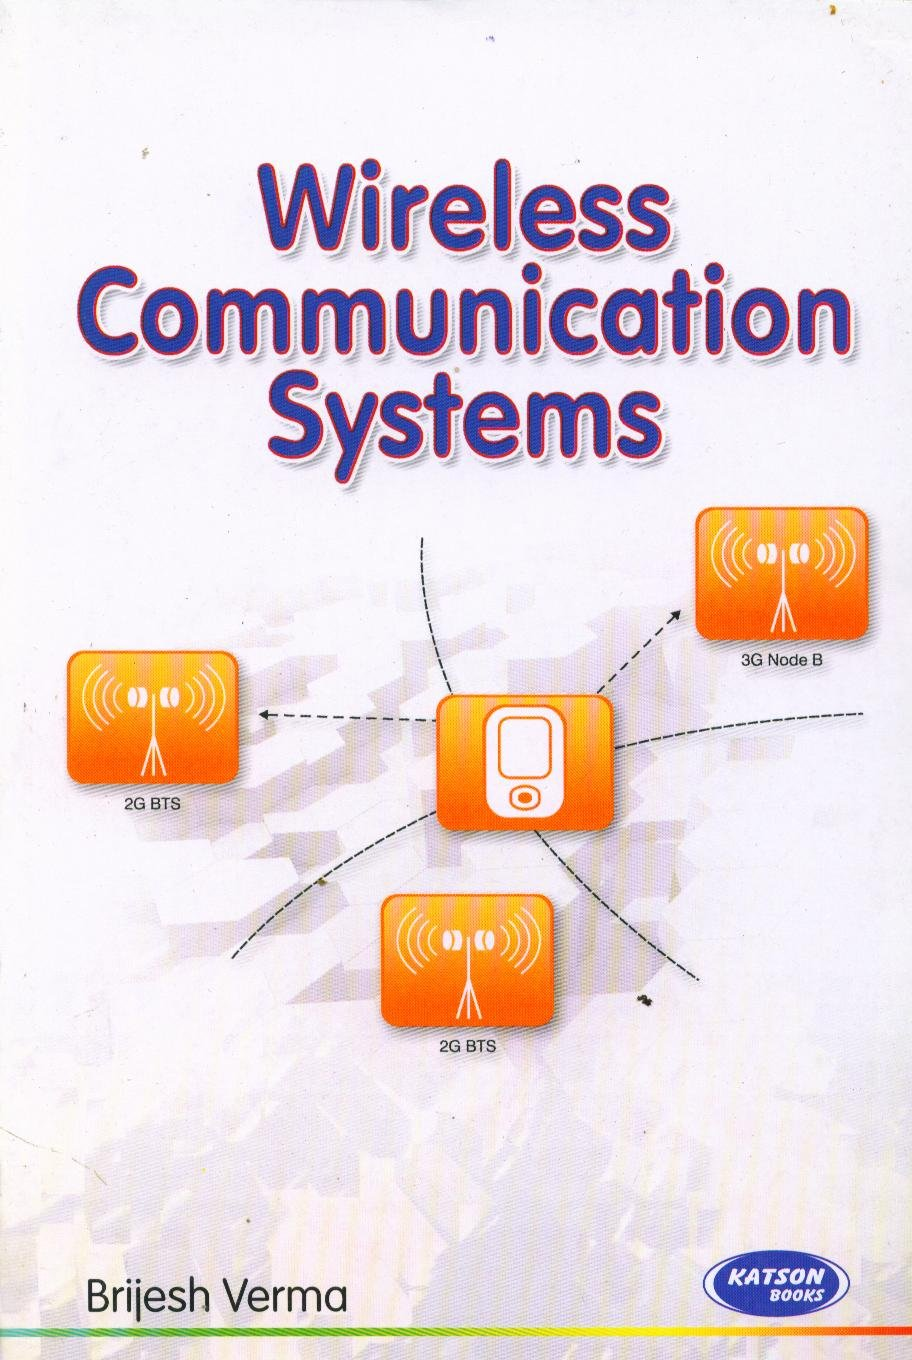 Tag: NETW 589 Entire Course Wireless Communication